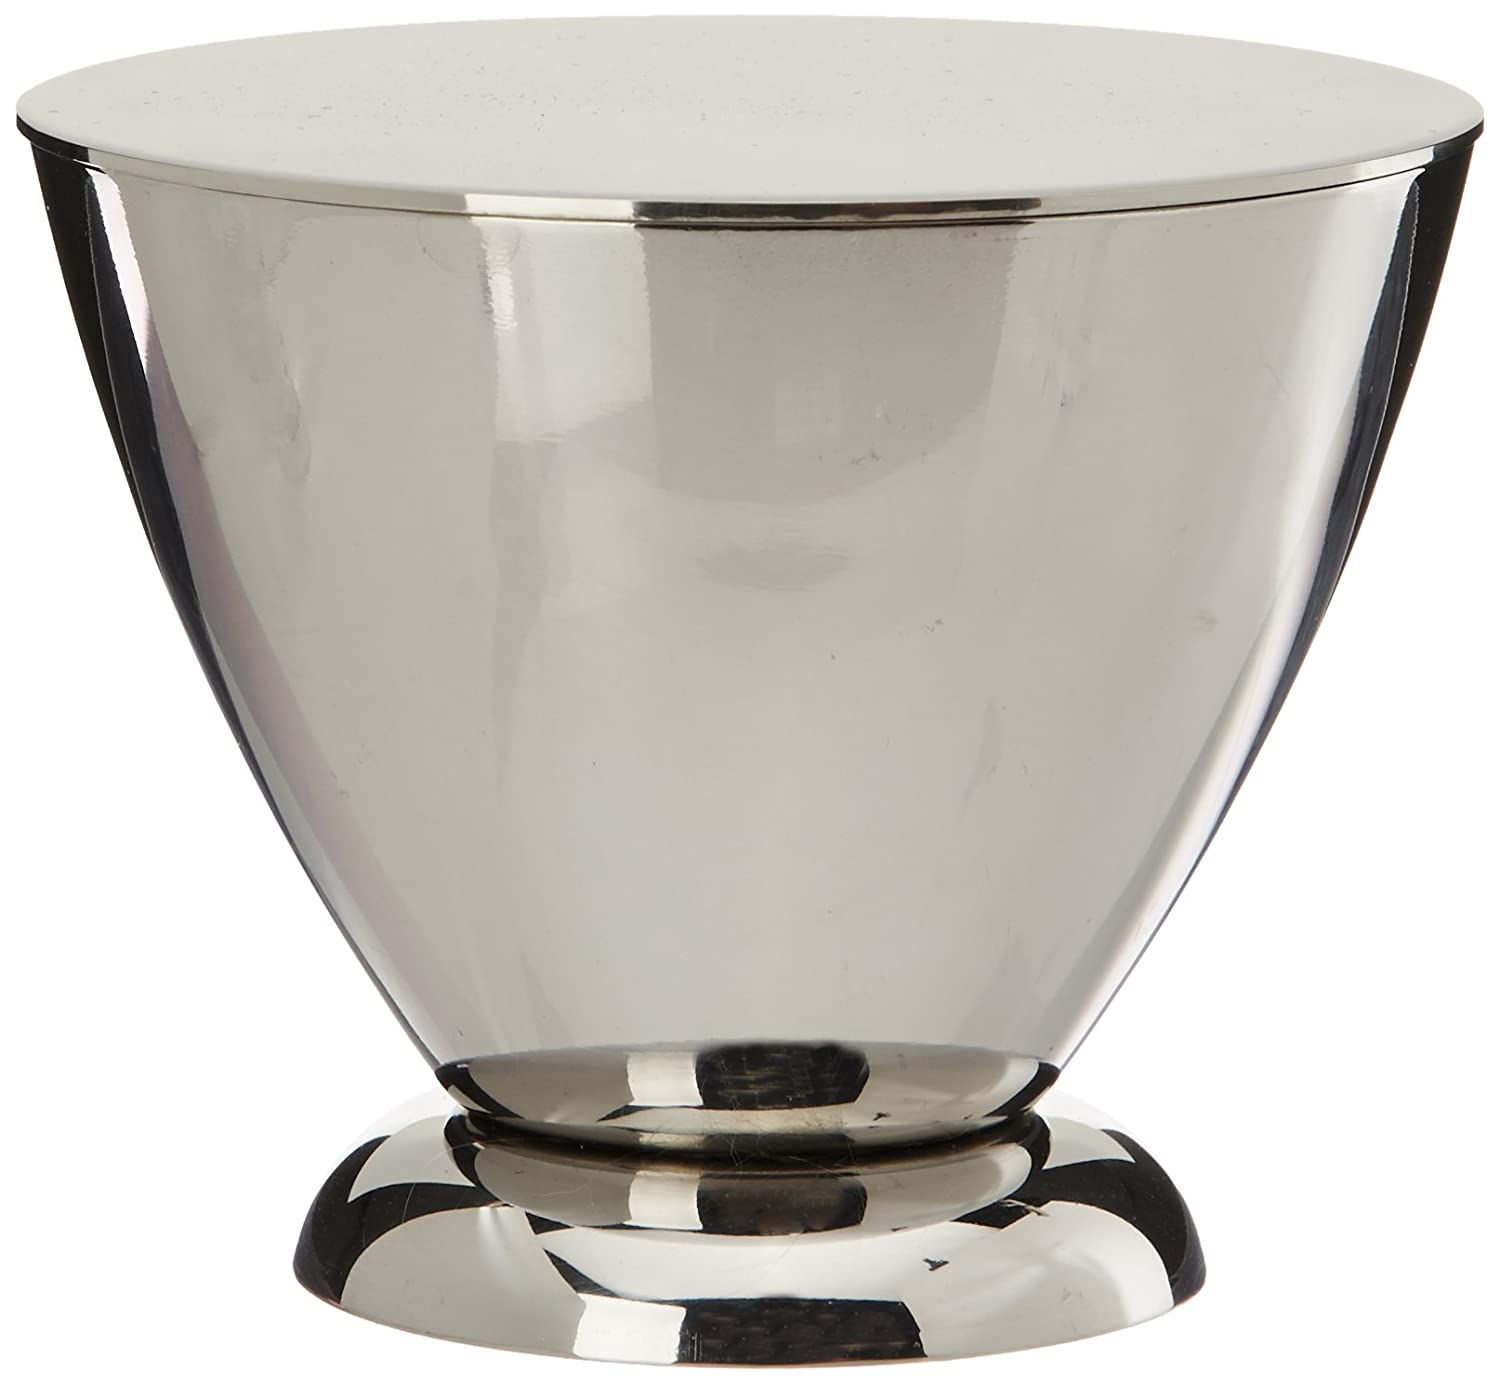 Mepra 230595 Sugar Bowl 6 Cups Uno